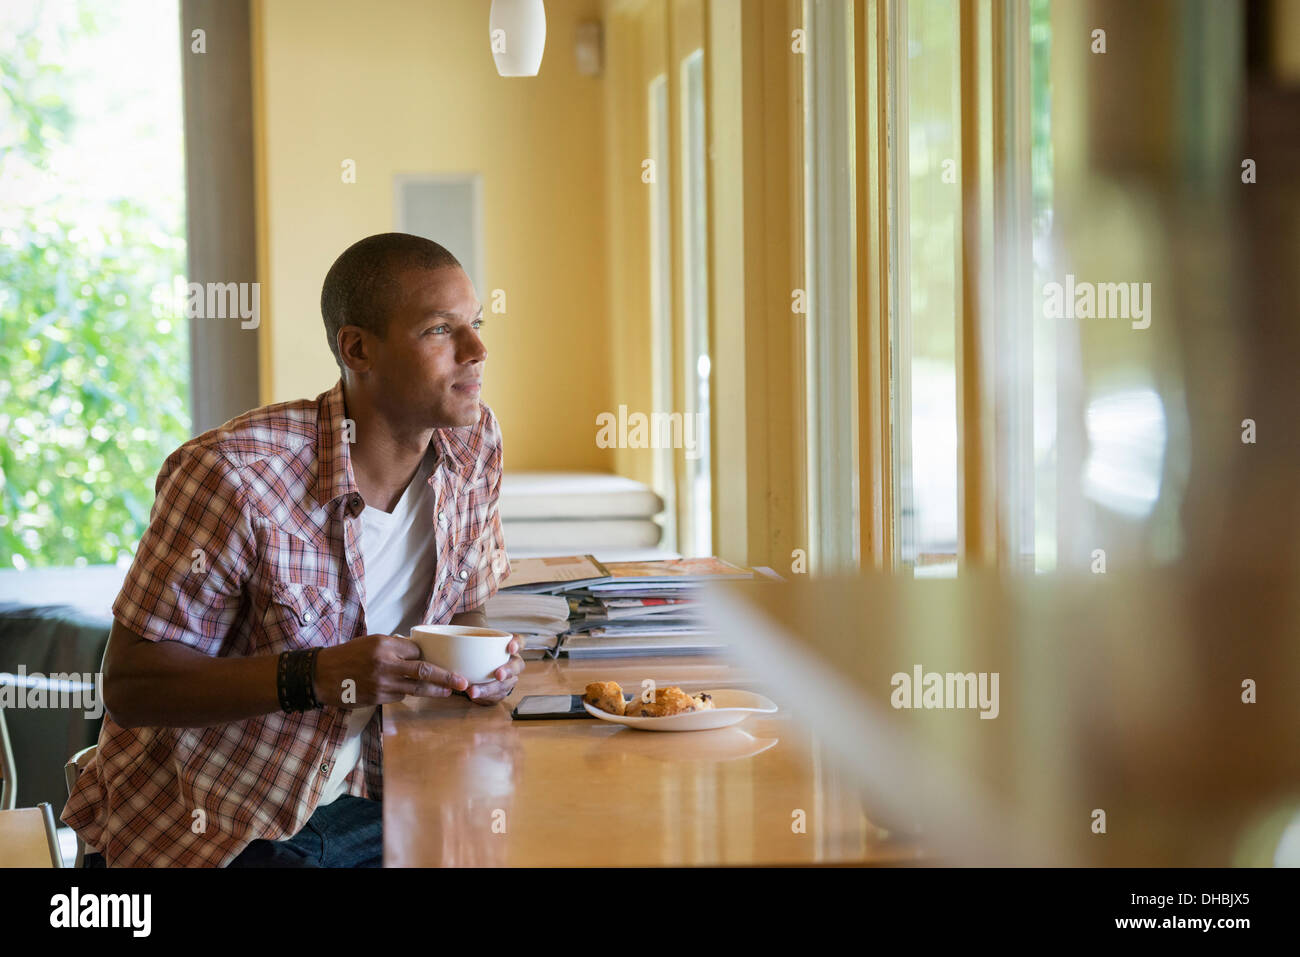 A man seated having a cup of coffee, holding a digital tablet. - Stock Image